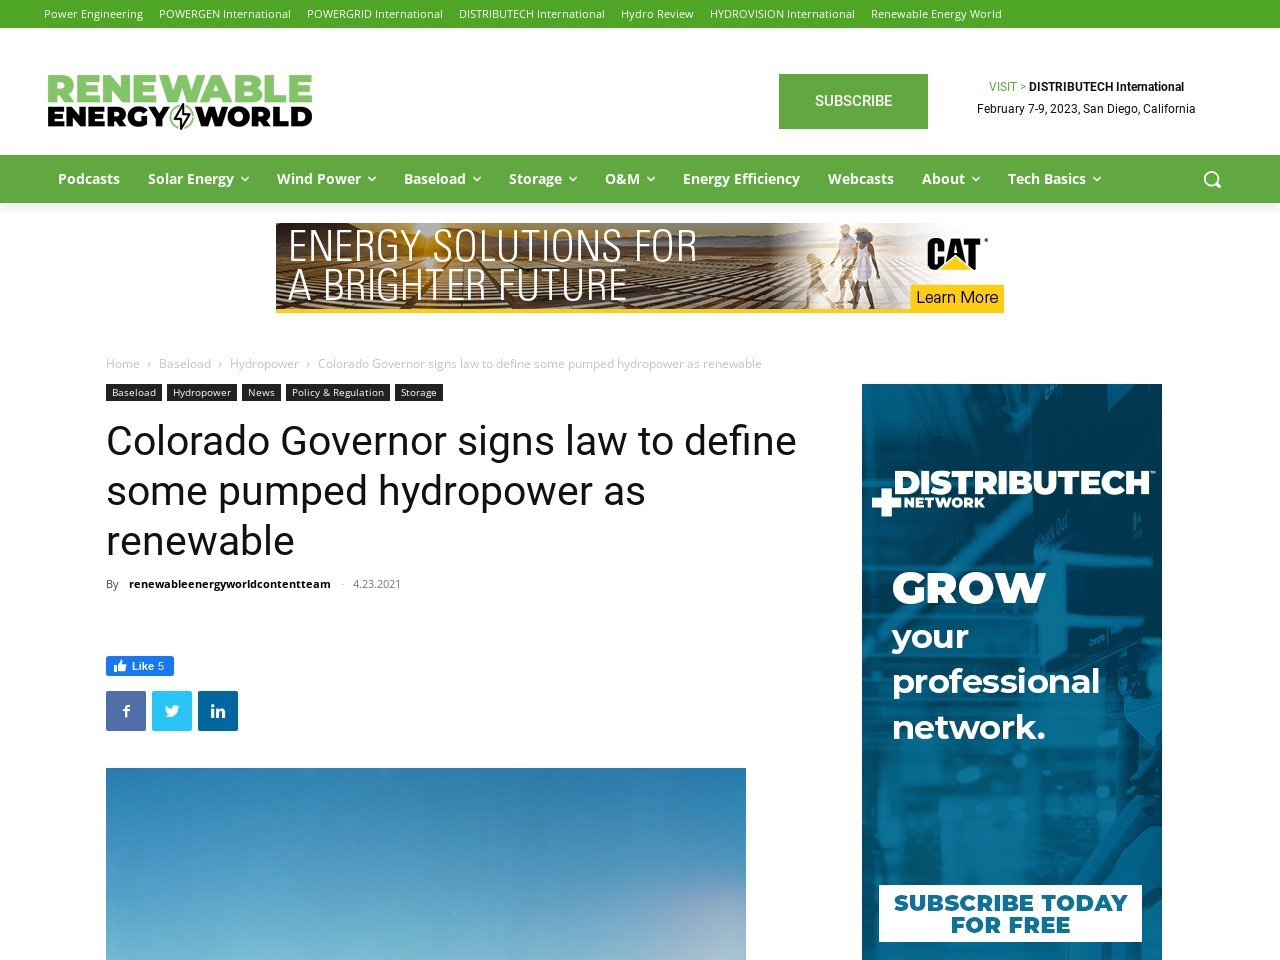 Colorado Governor signs law to define some pumped hydropower as renewable